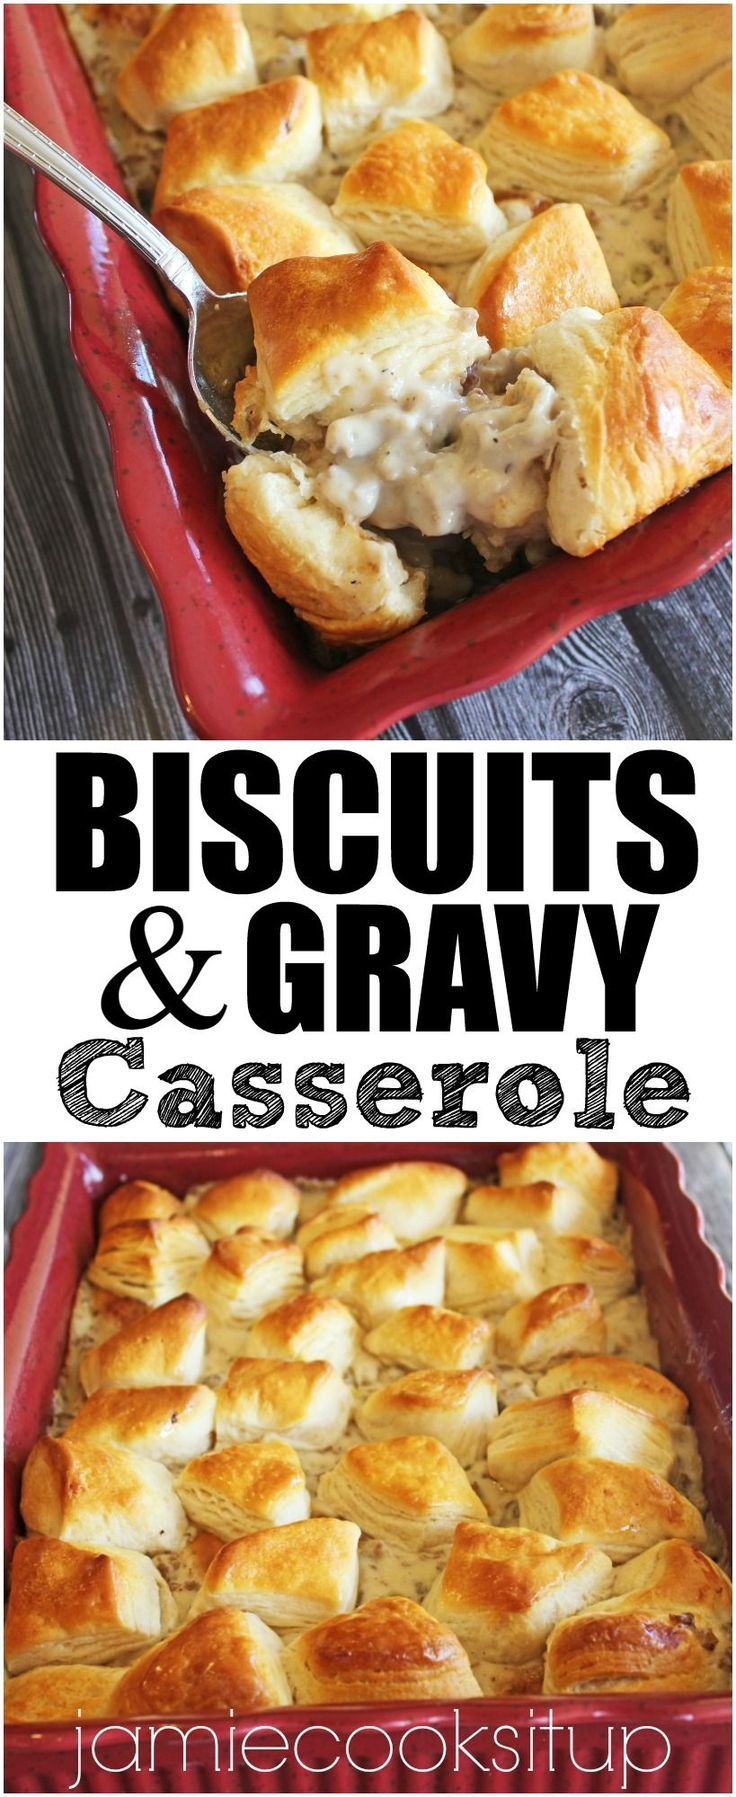 Biscuits and Gravy Casserole from Jamie Cooks It Up! Make if for breakfast or dinner, holiday brunch or for breakfast on Christmas morning.